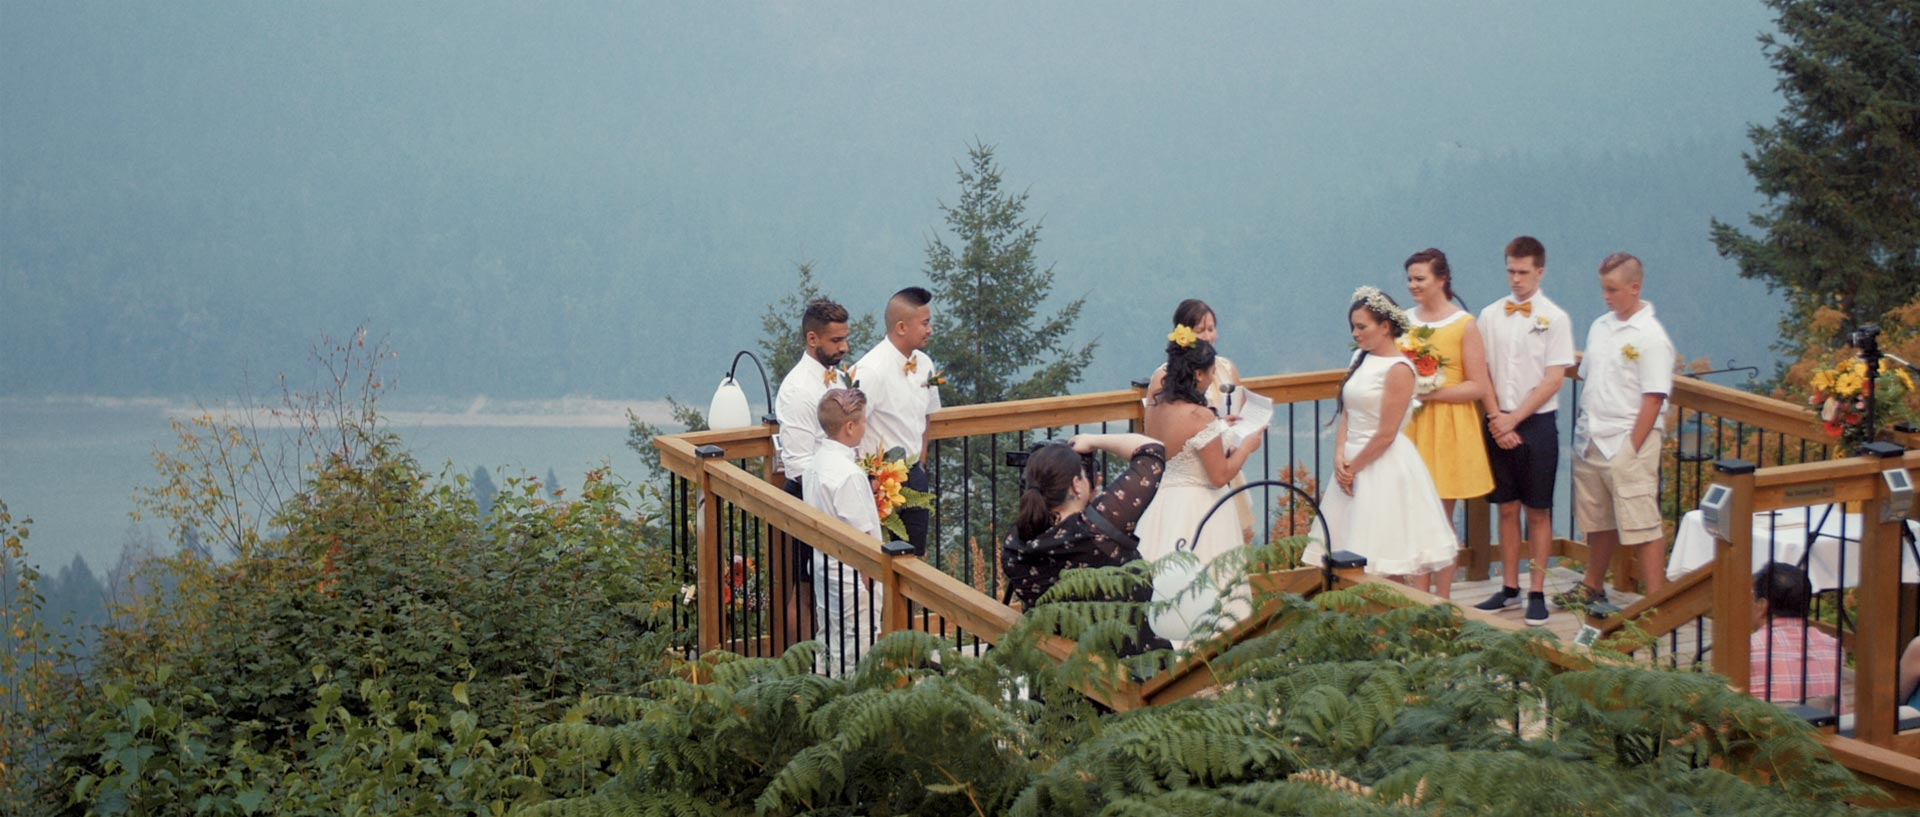 same-sex-wedding-video-Vancouver-American-creek-lodge